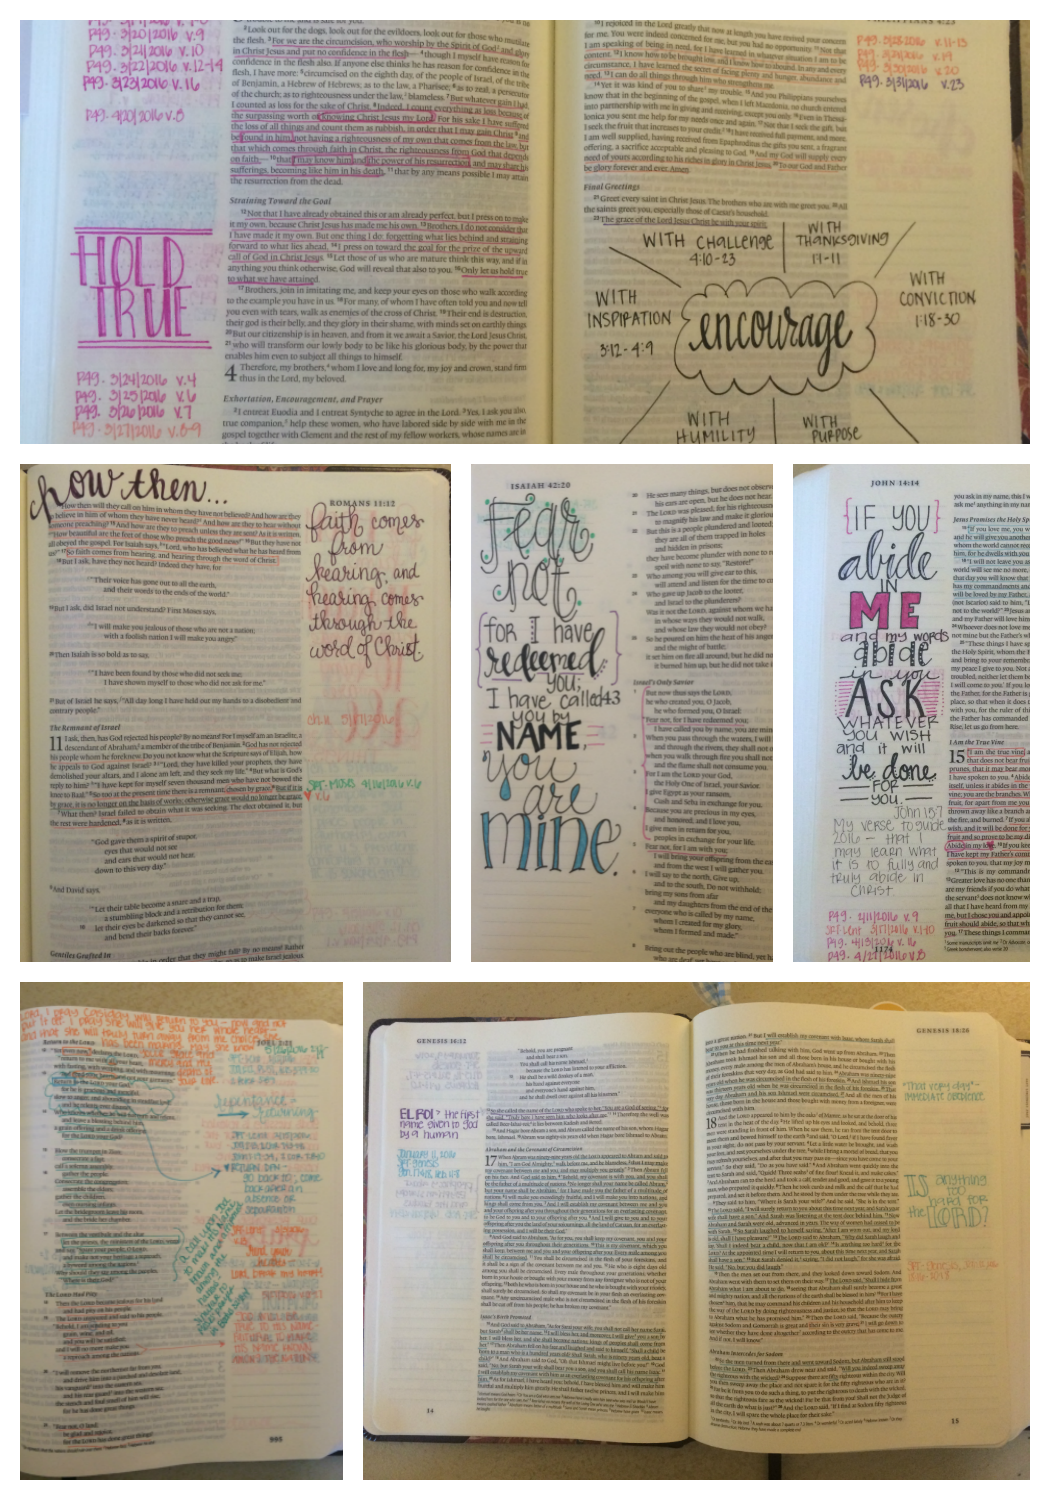 A journaling Bible can also be an awesome gift for someone special in your life. Using it record specific prayers, reflections on verses in light of that person, and even your own notes about Scripture make this a deeply personal and special gift.